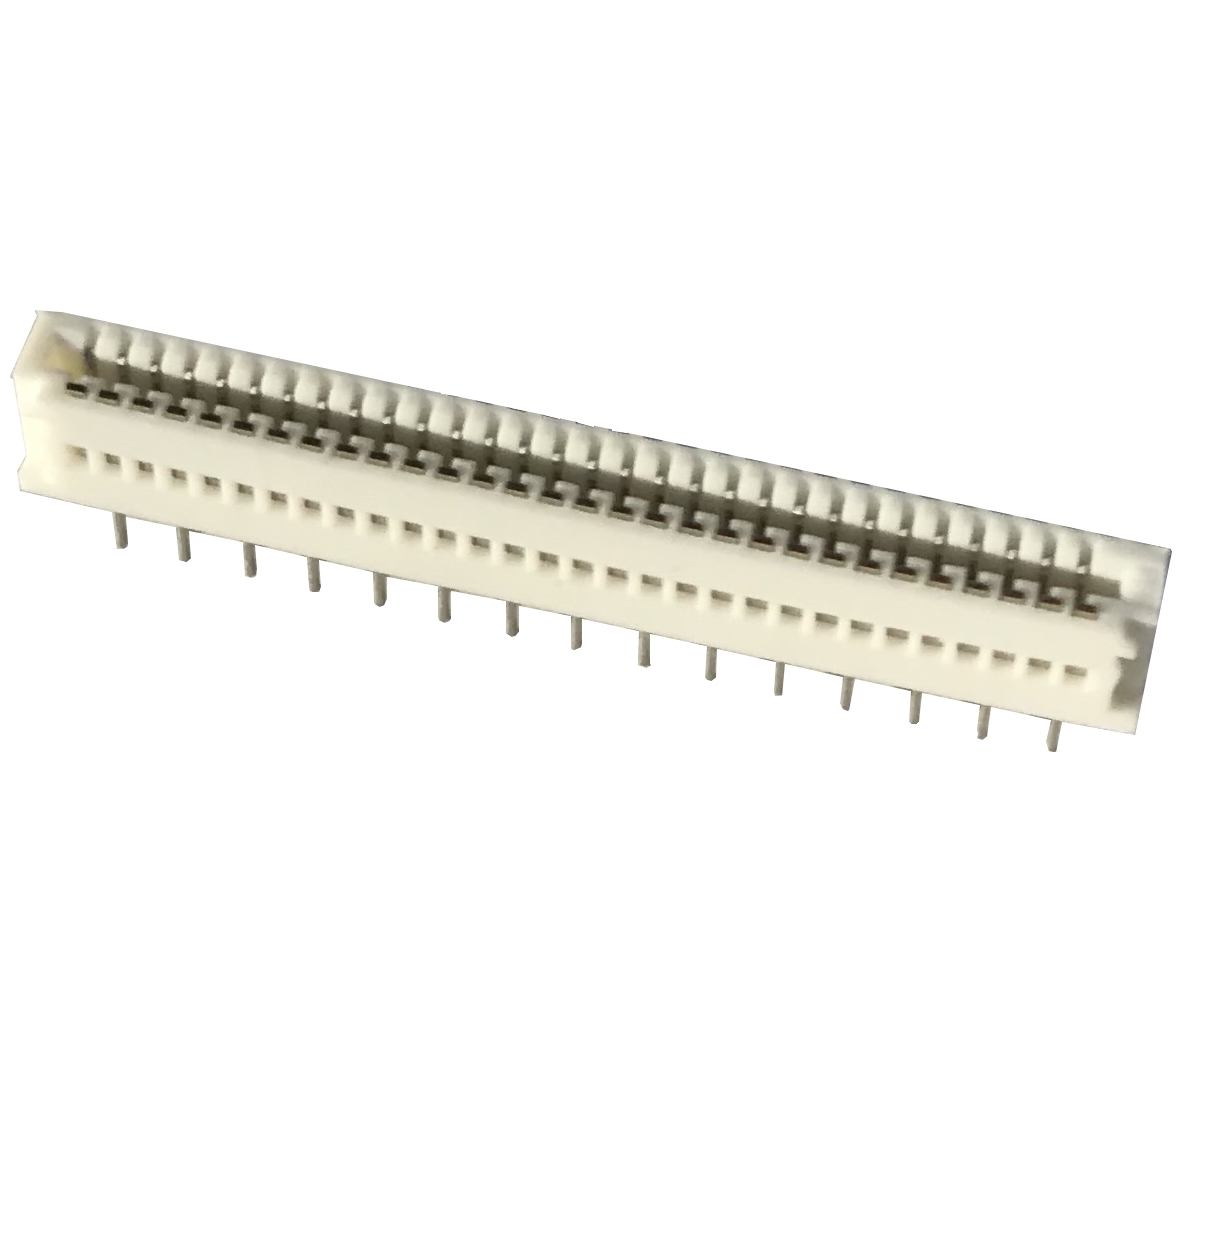 A600 Keyboard Socket for Amiga 600 (CN13)